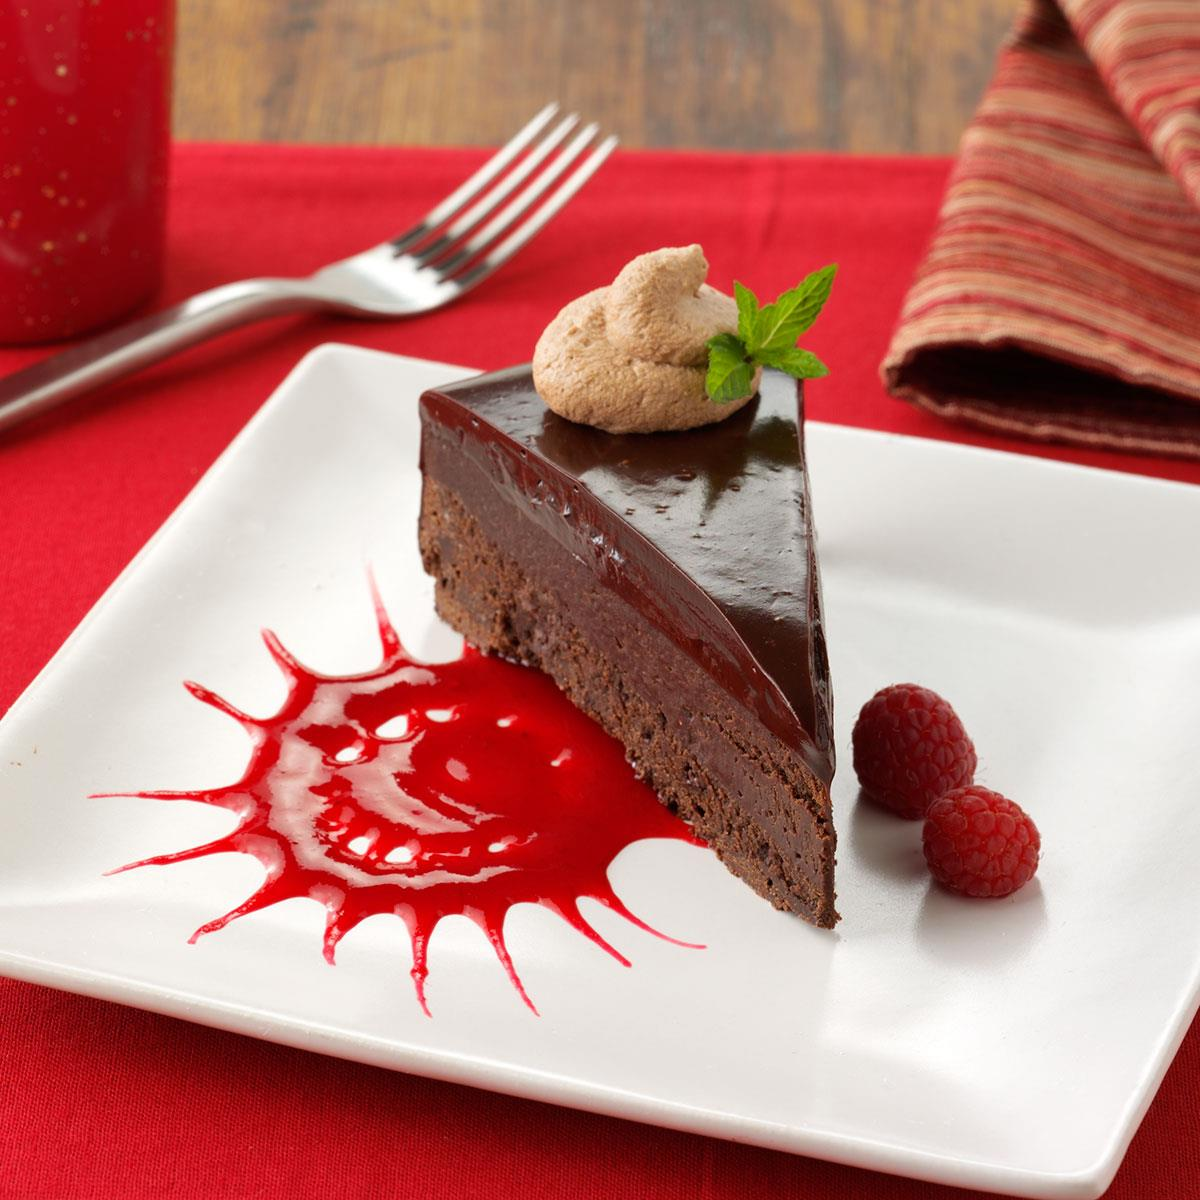 Chocolate Ganache Cake With Raspberry Sauce Recipe How To Make It Taste Of Home